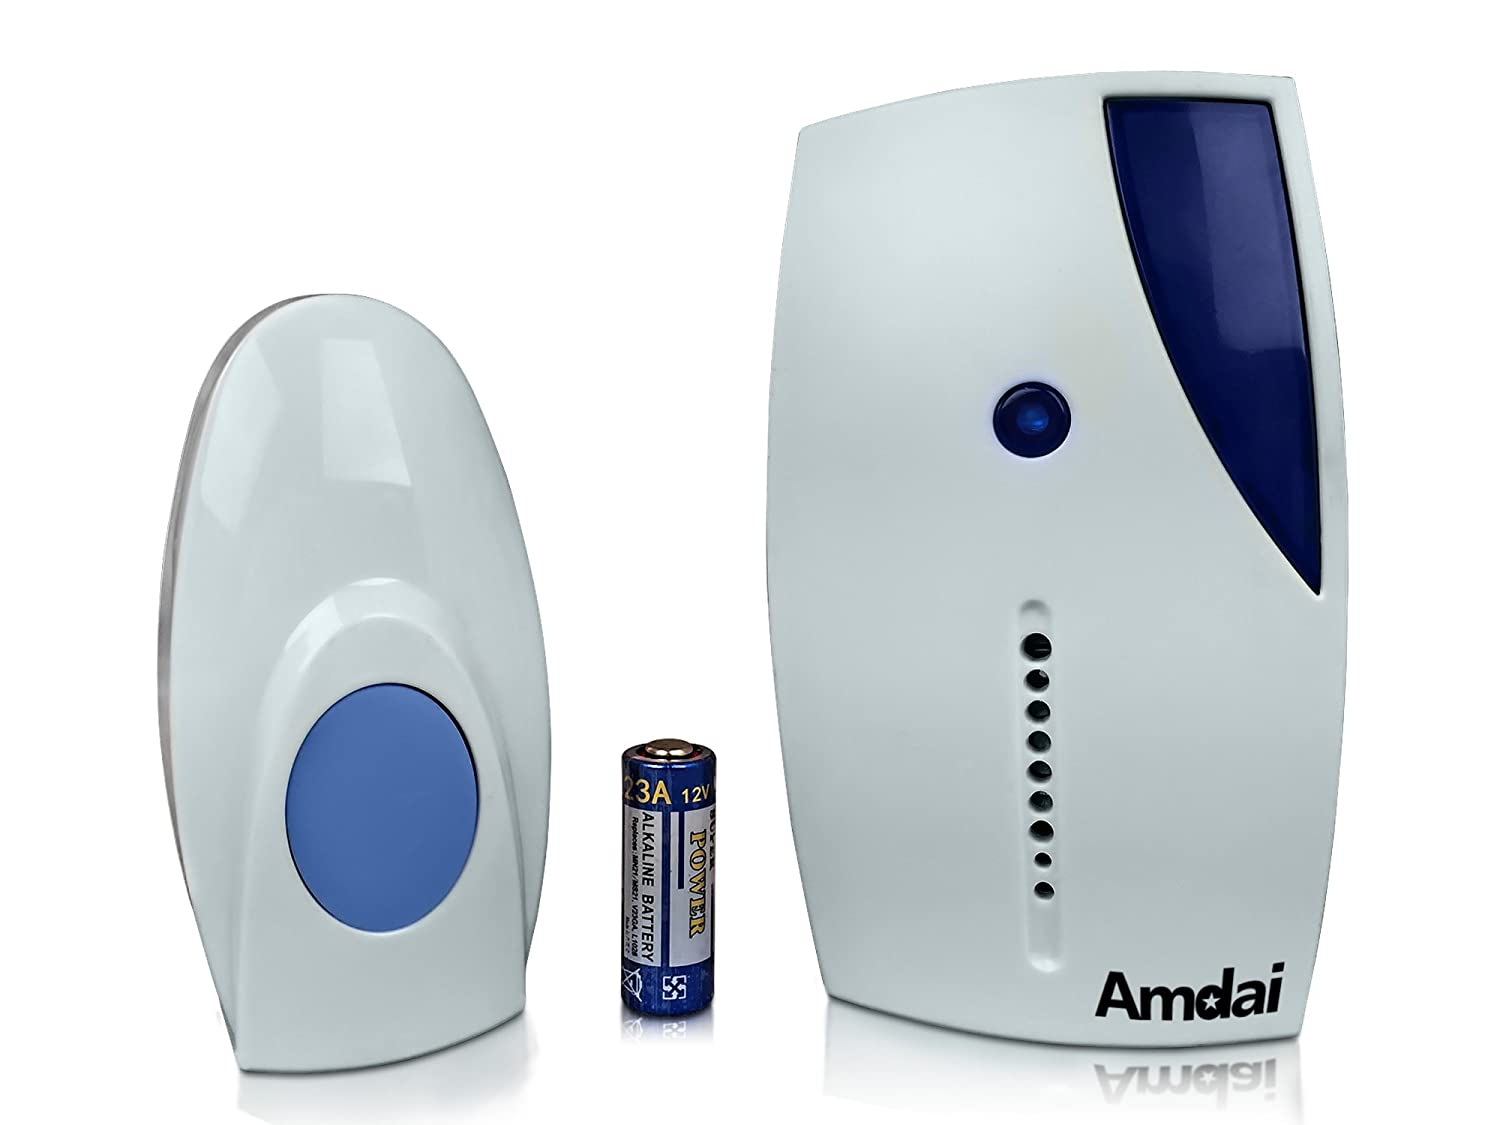 Amdai Wireless Doorbell Easy Install 32 Chimes Diy Electrical Wiring In The Home Deaf Doorbells Tools